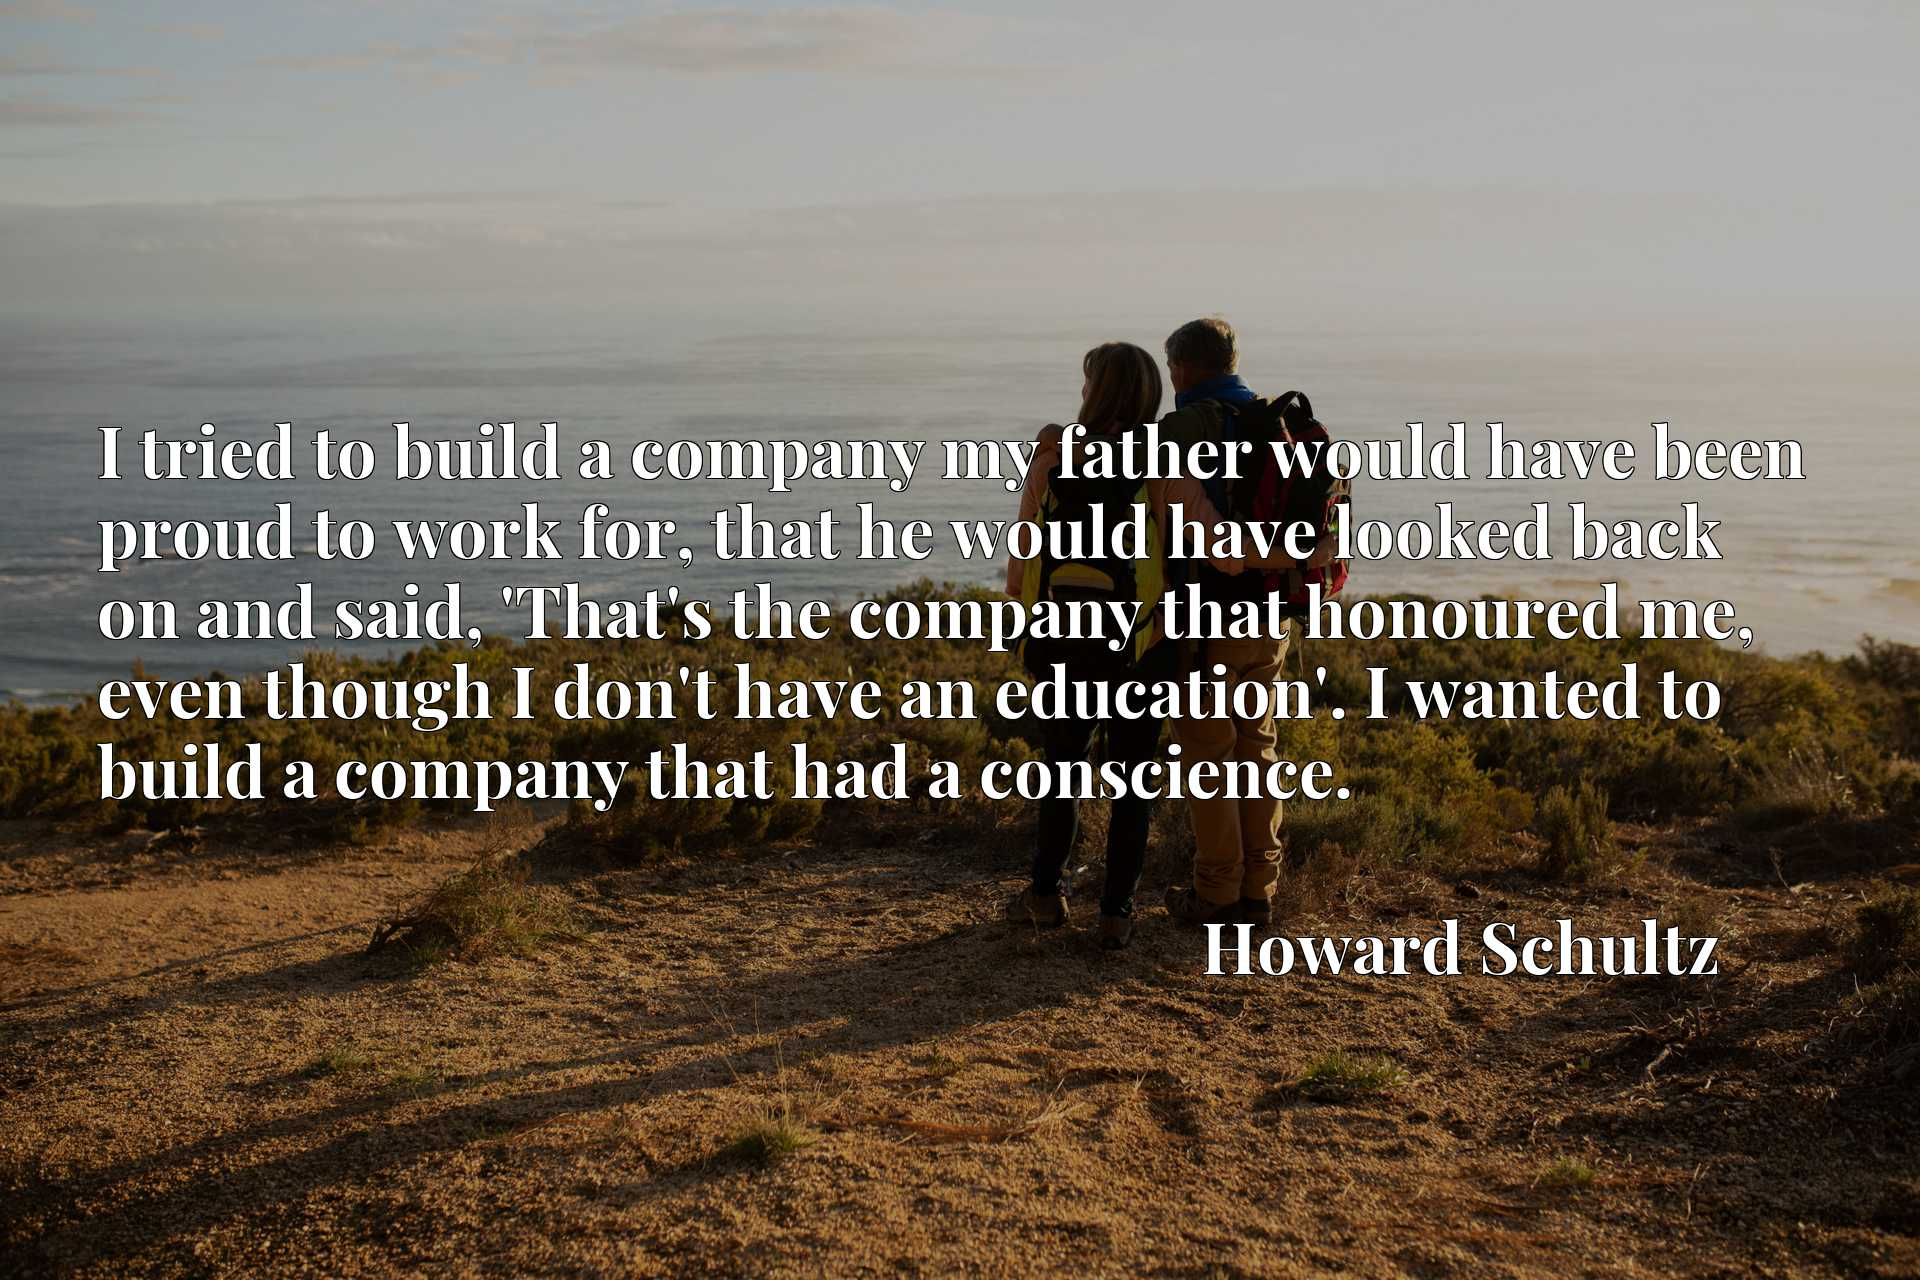 I tried to build a company my father would have been proud to work for, that he would have looked back on and said, 'That's the company that honoured me, even though I don't have an education'. I wanted to build a company that had a conscience.